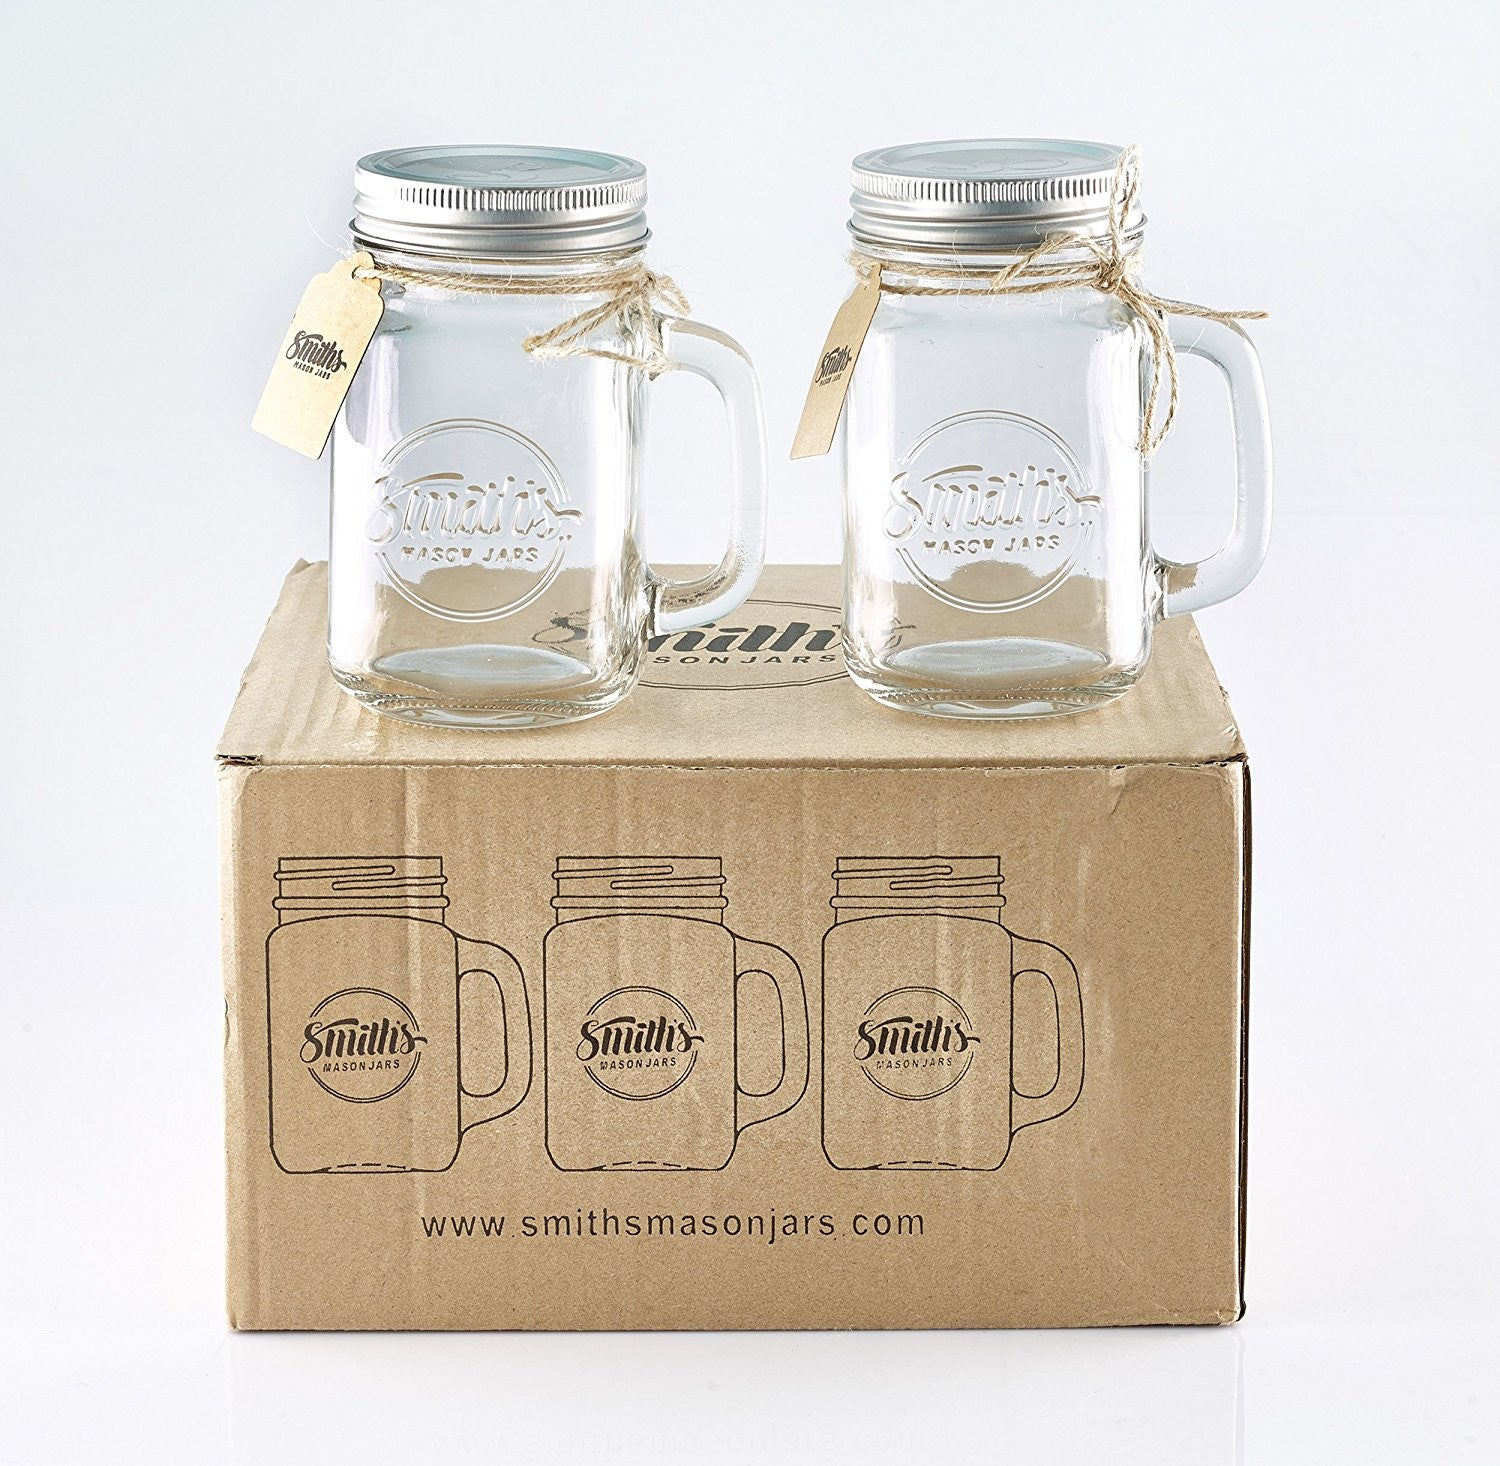 Smith's Mason Jars 16 oz Mason Jar Mugs with Lids x 6